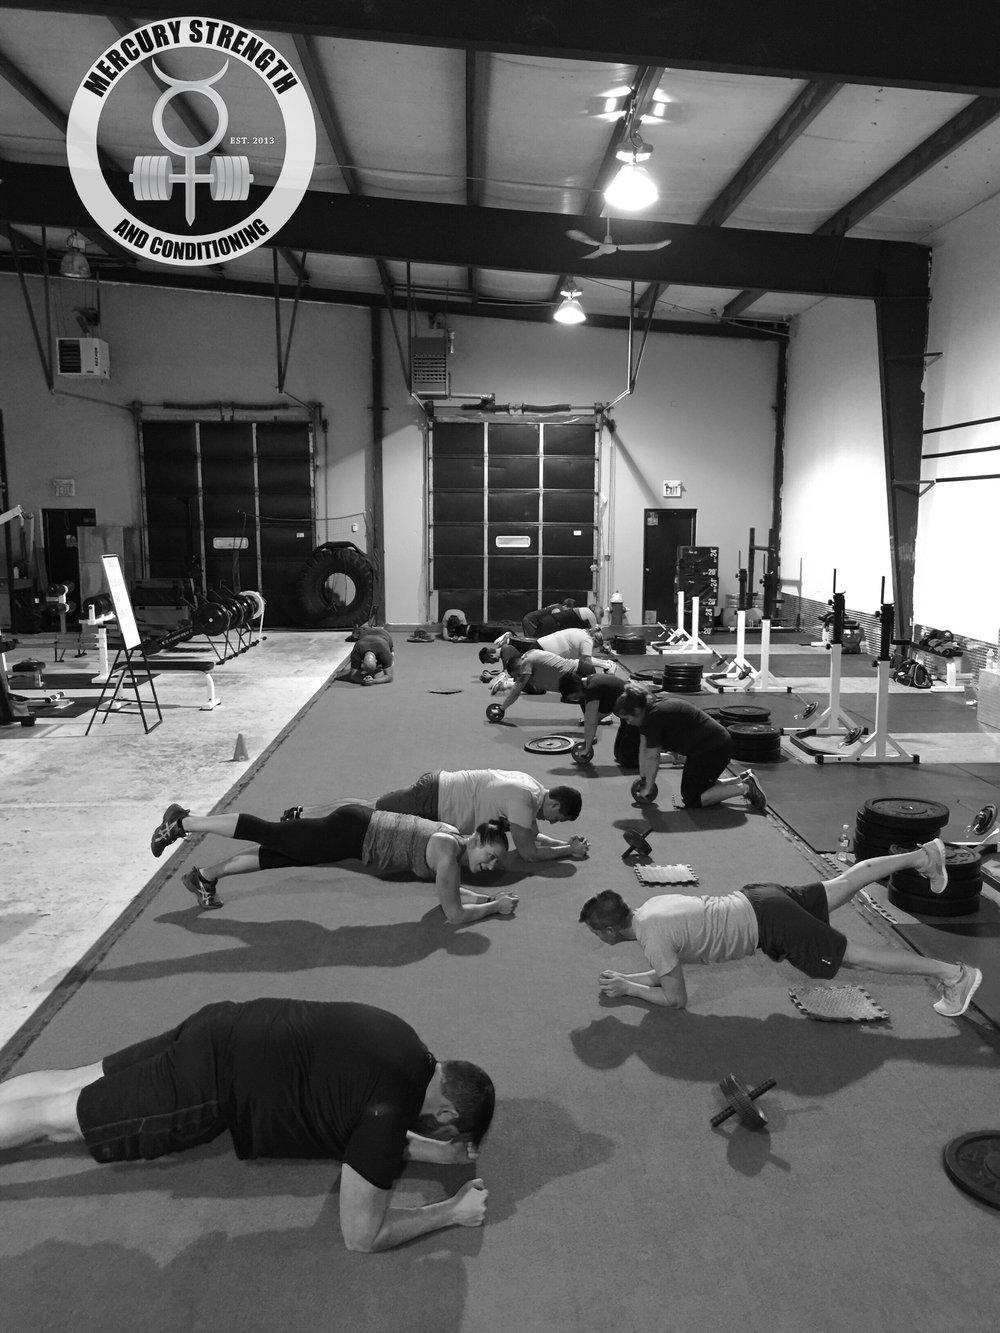 A packed 16:45 session getting some ab work in